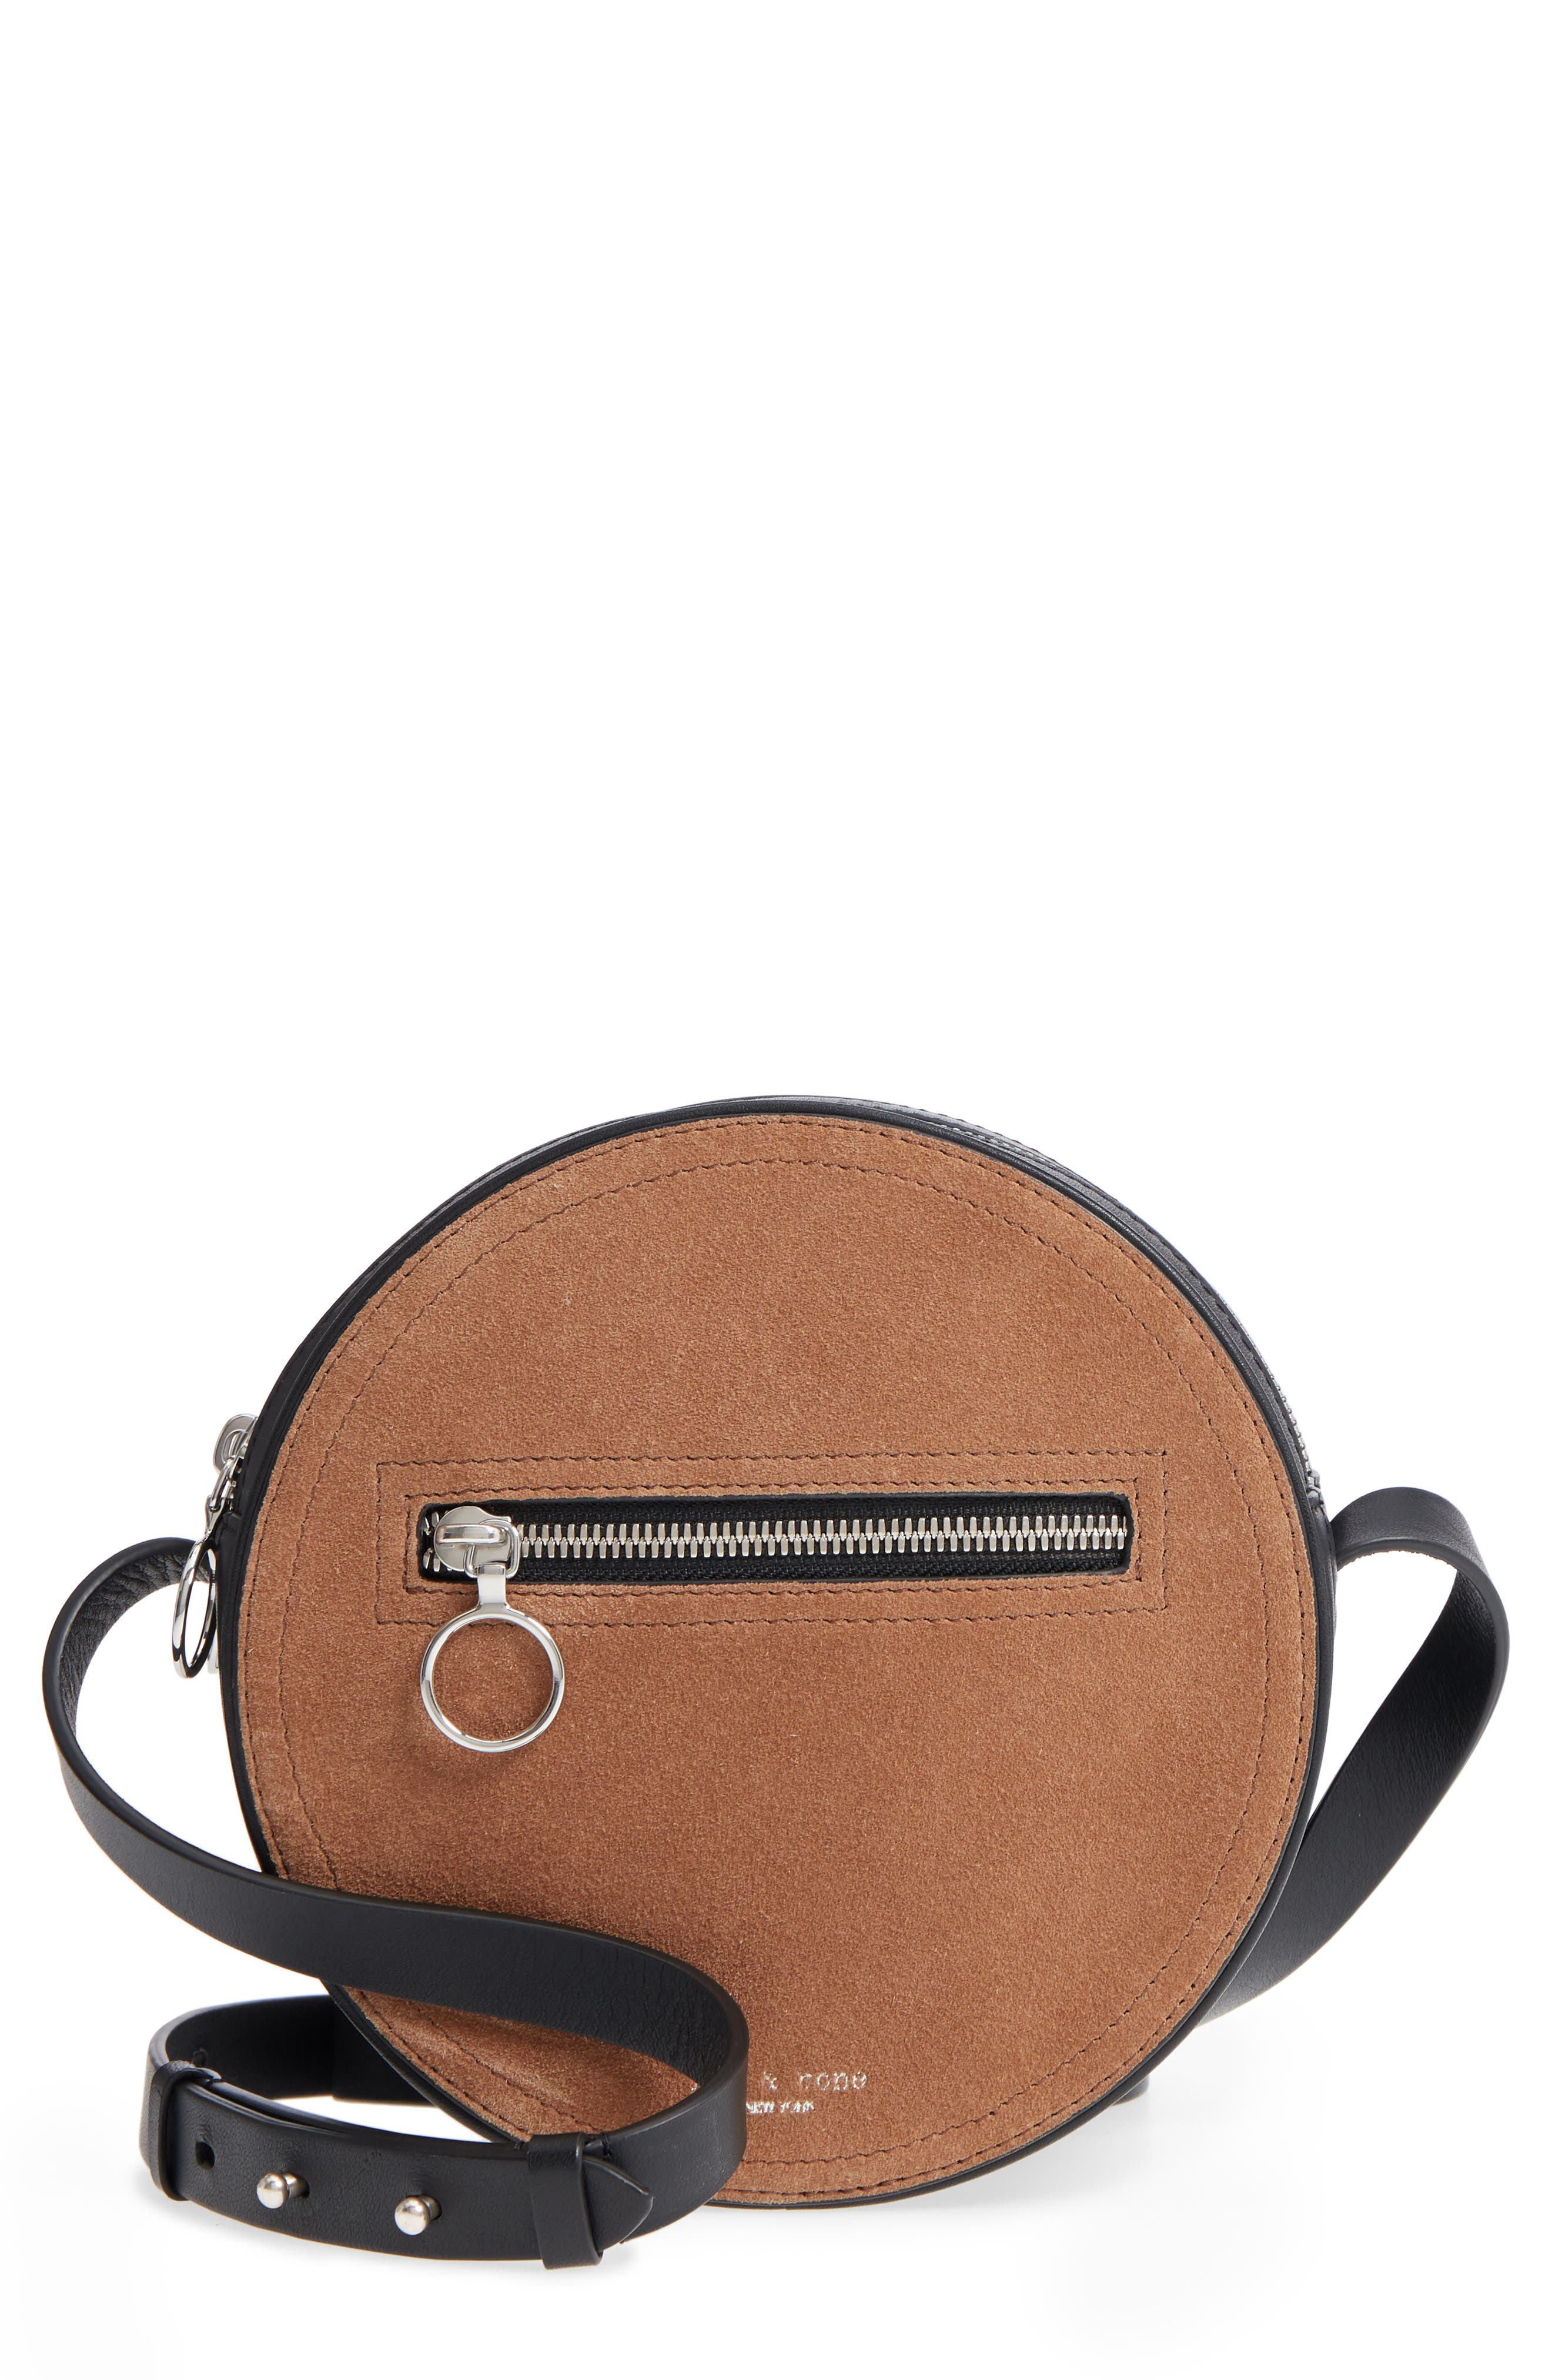 Suede & Leather Circle Crossbody Bag,                             Main thumbnail 1, color,                             200